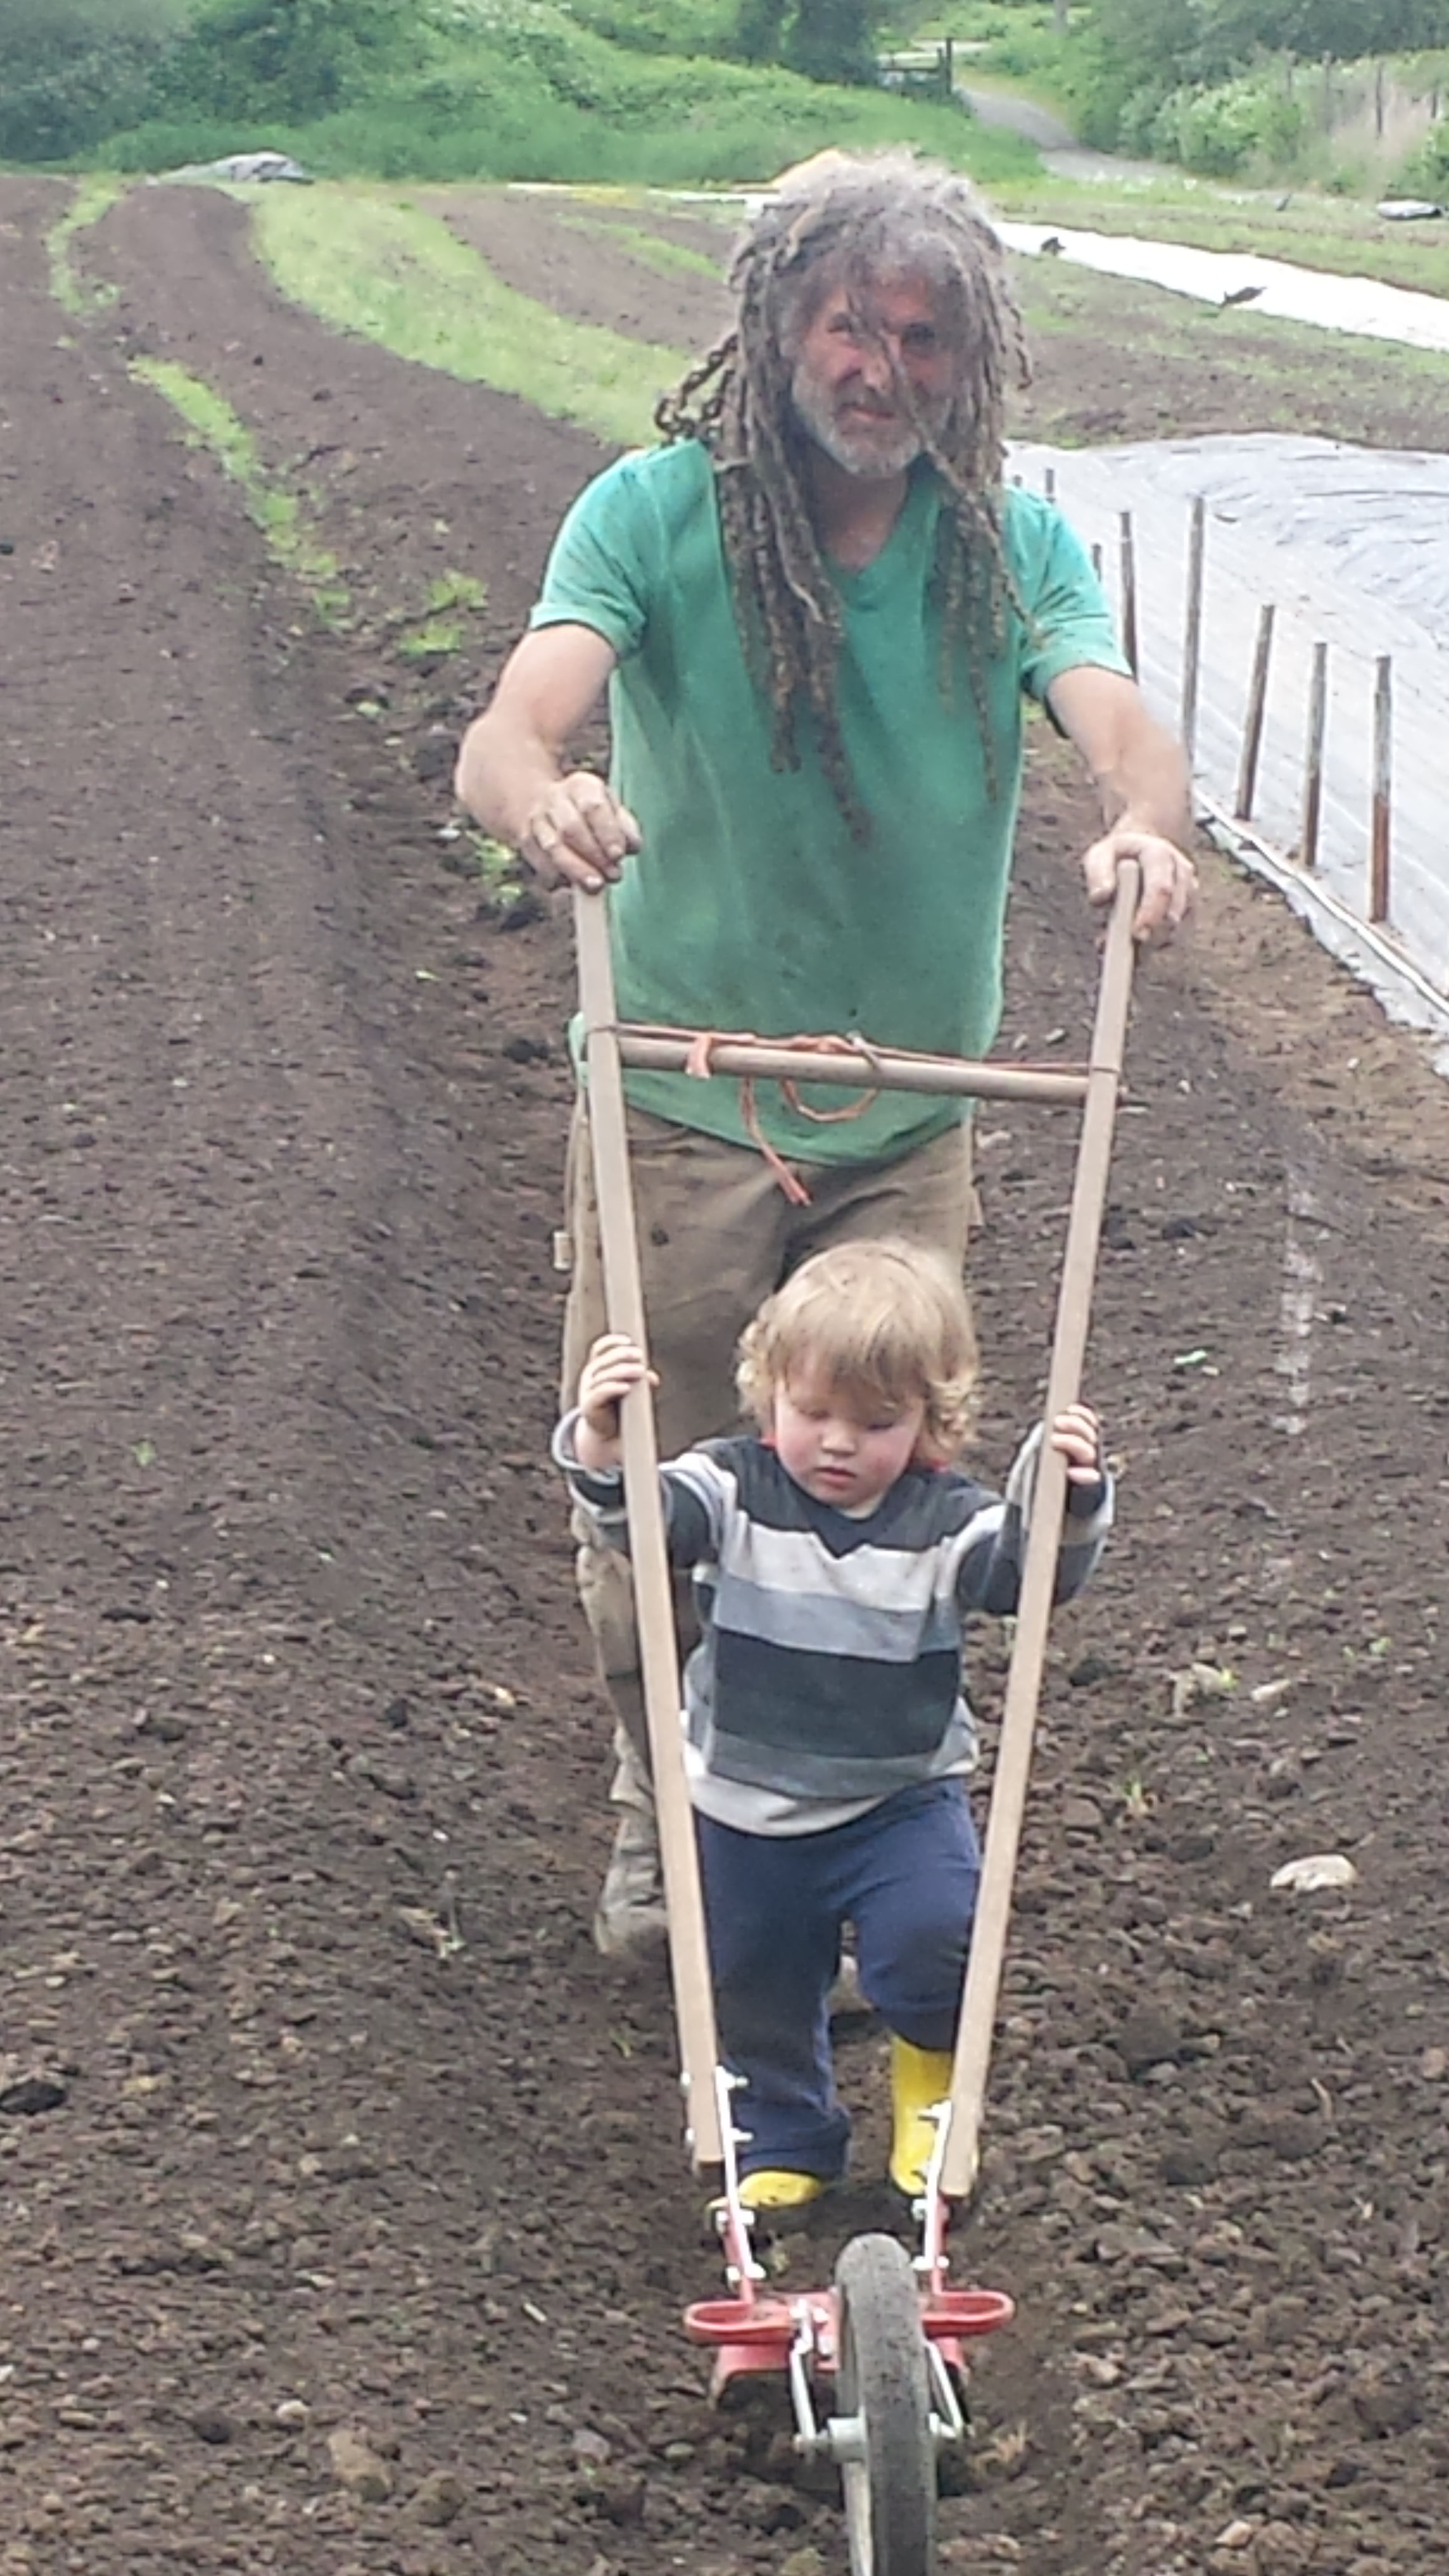 - In 2016, his dream of finding a piece of land to call his own came true. With his wife and son,he moved One Love Farm to the fertile and sunny benches of the Fraser Canyon. Here, with mountain goats looking down on them, he continues to work the soil with his hands while the Fraser River drifts past and down to the Fraser Valley with promise of great things to come.